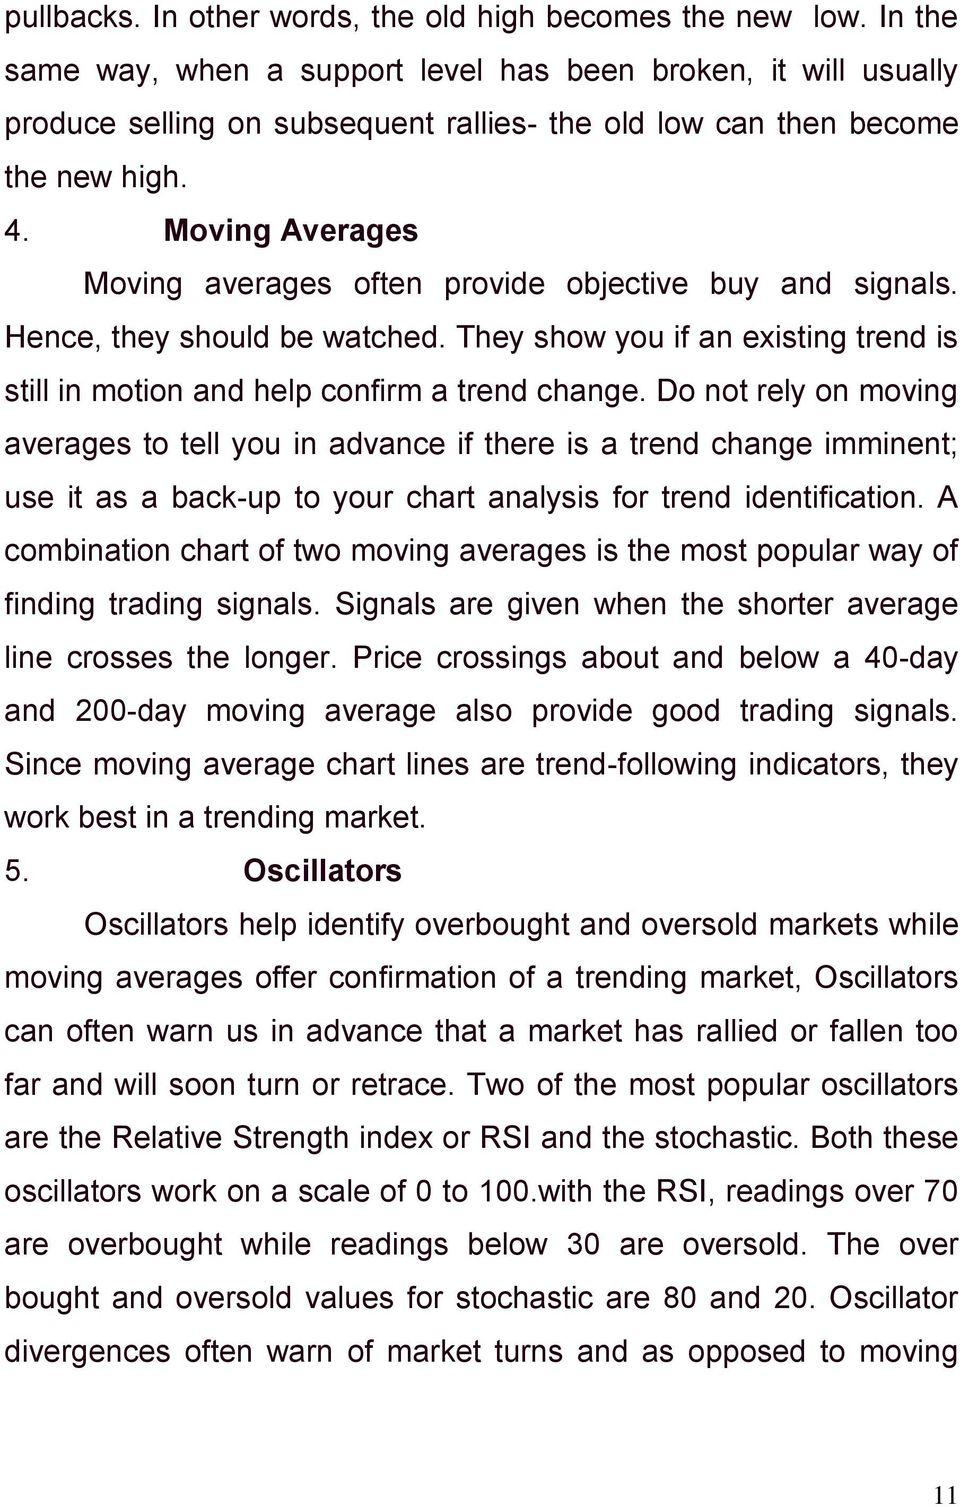 Moving Averages Moving averages often provide objective buy and signals. Hence, they should be watched. They show you if an existing trend is still in motion and help confirm a trend change.